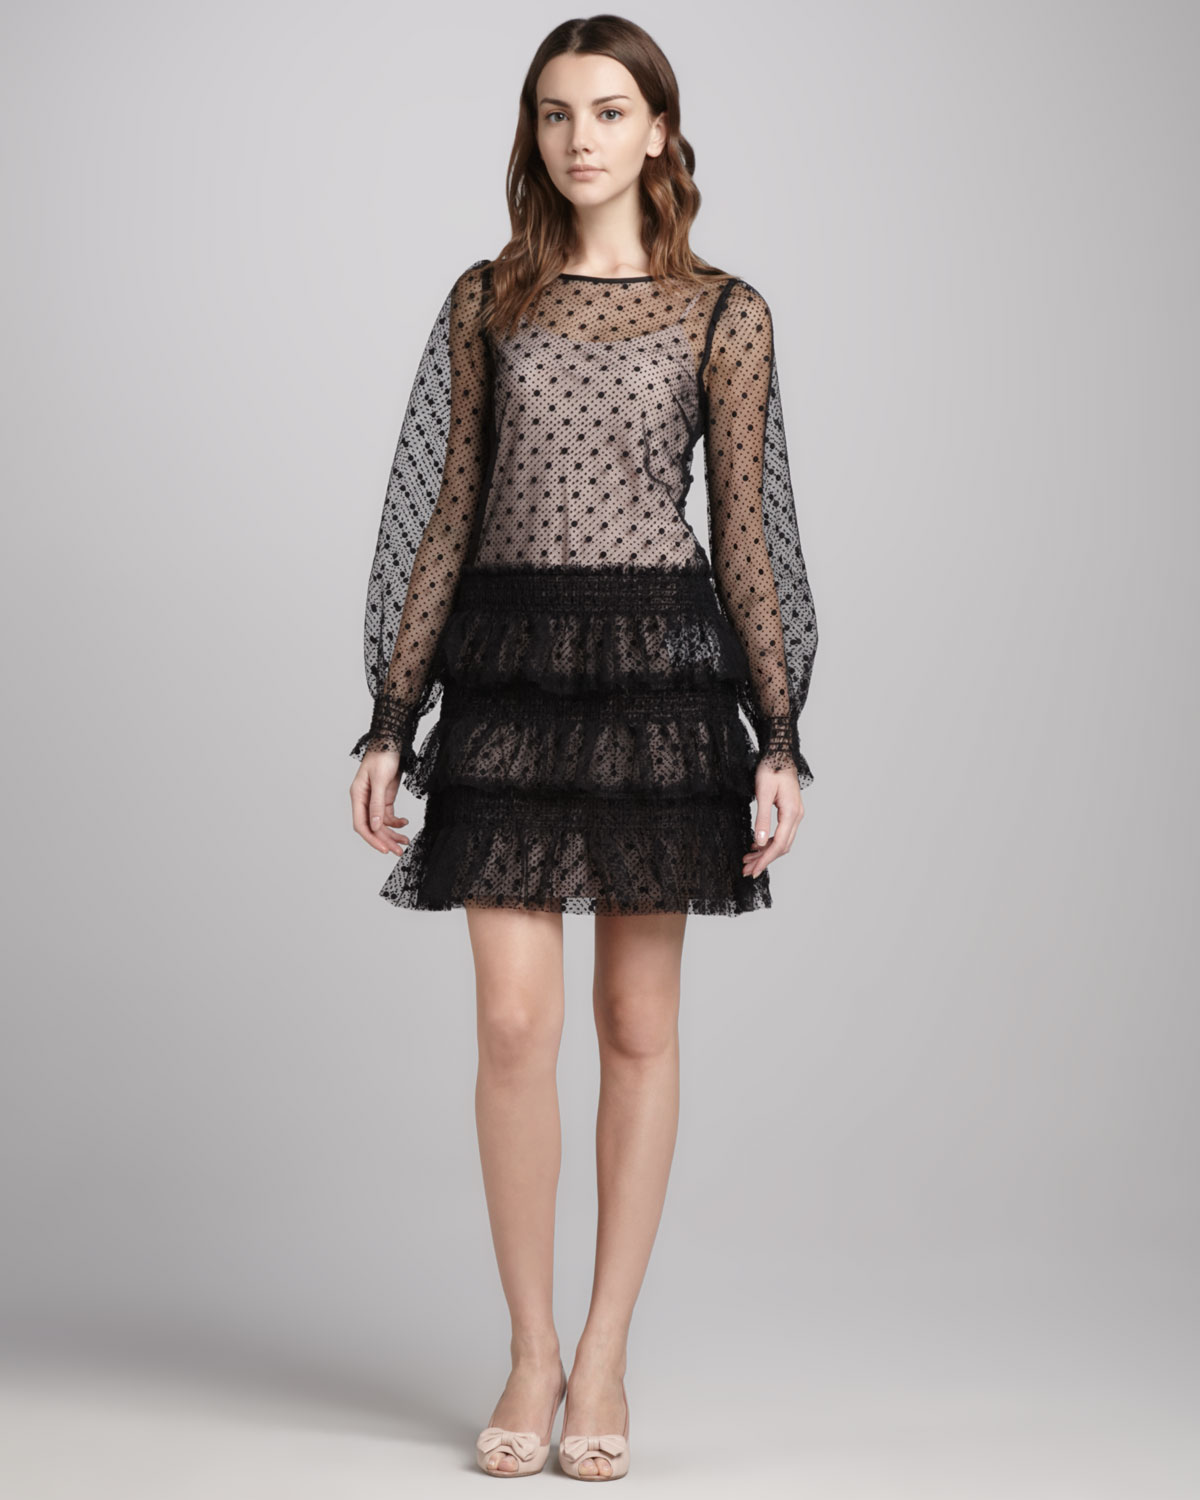 Red Valentino Spring 2016: Red Valentino Womens Swiss Dot Tulle Dress In Black